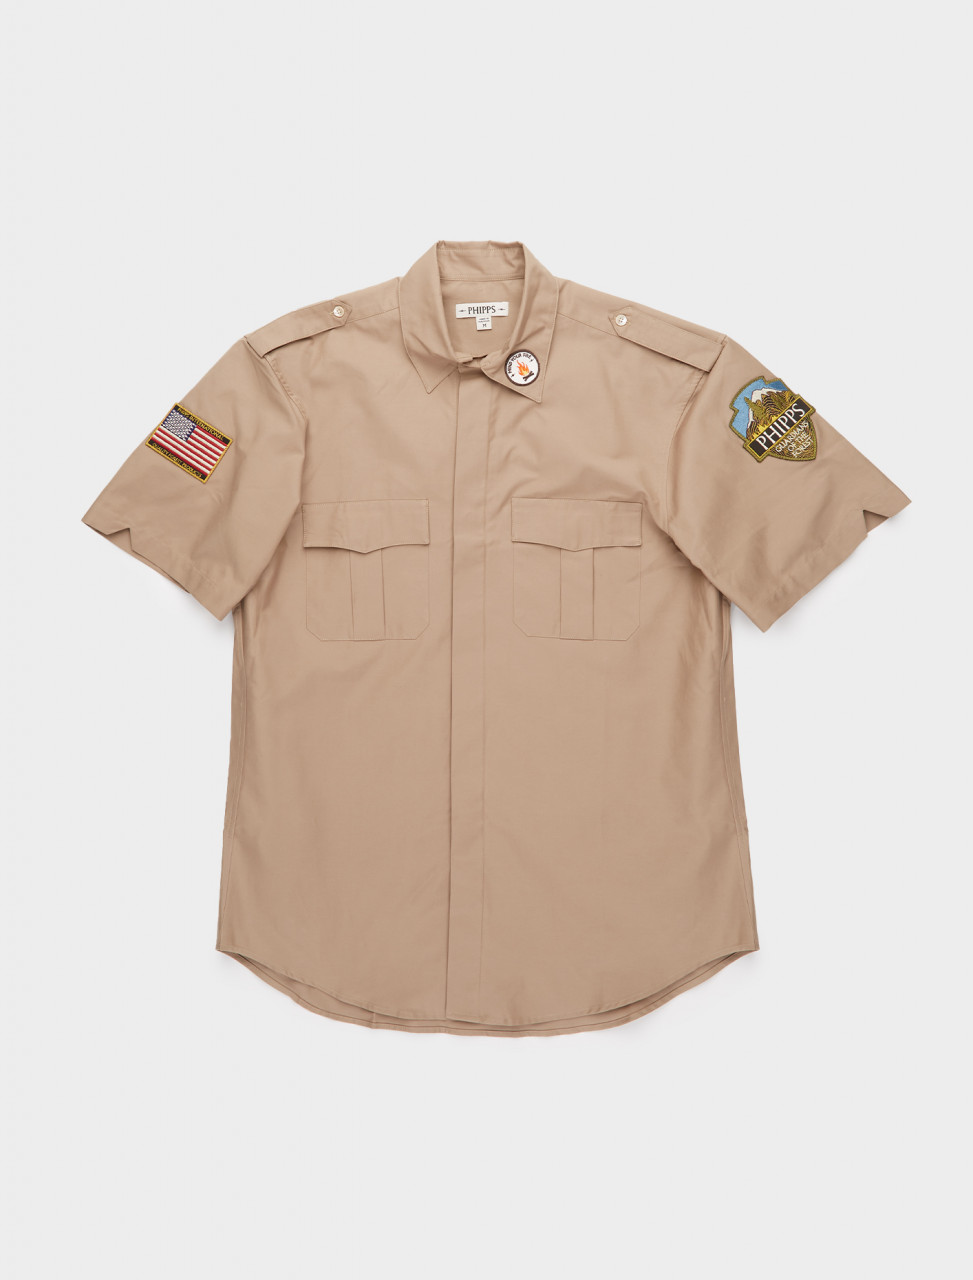 261-PHFW20-S09 PHIPPS SHORT SLEEVE FOREST GUARDIAN SHIRT RANGER TAN